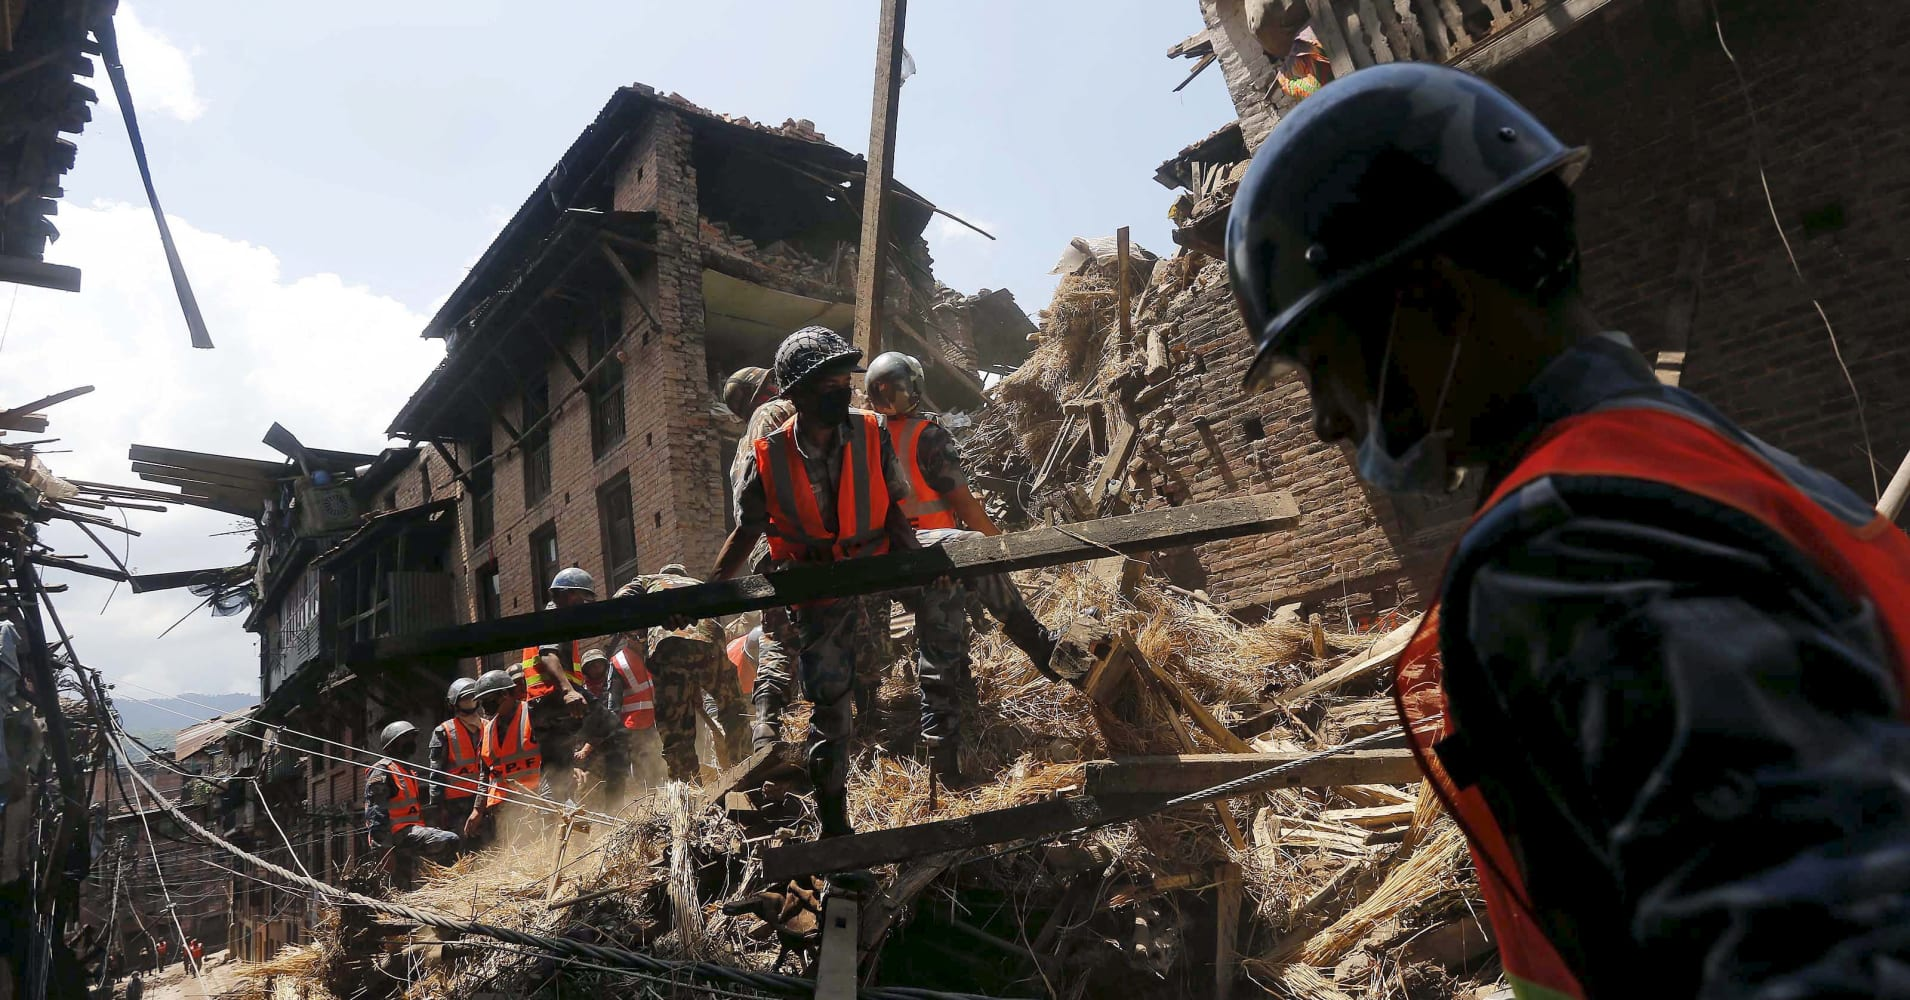 Nepal earthquake death toll could reach 10,000: PM